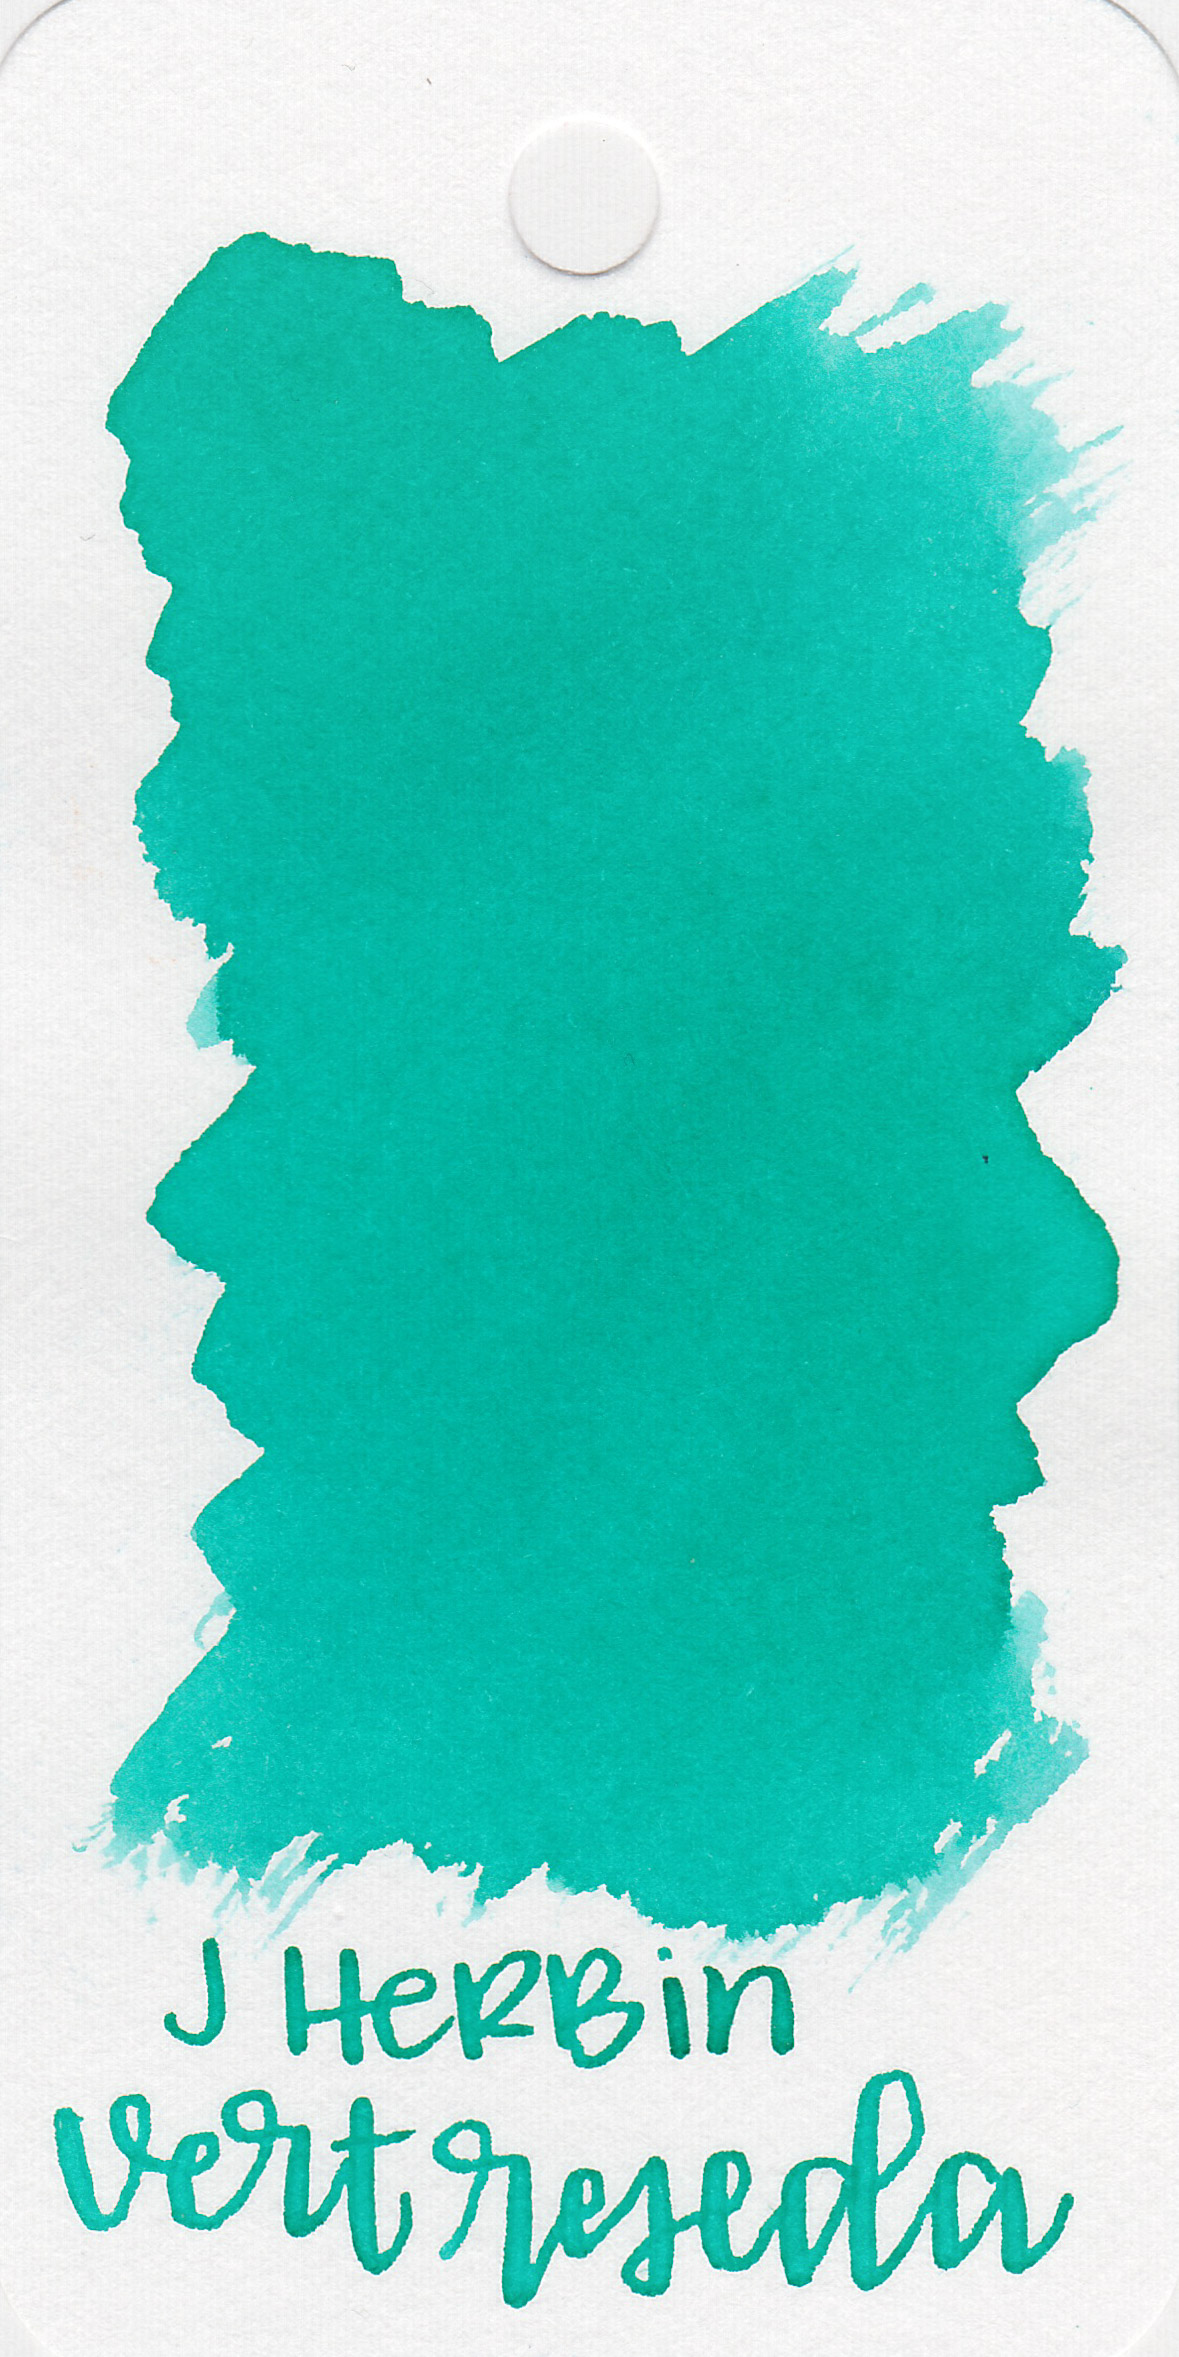 The color: - Vert Reseda is a pretty light teal.